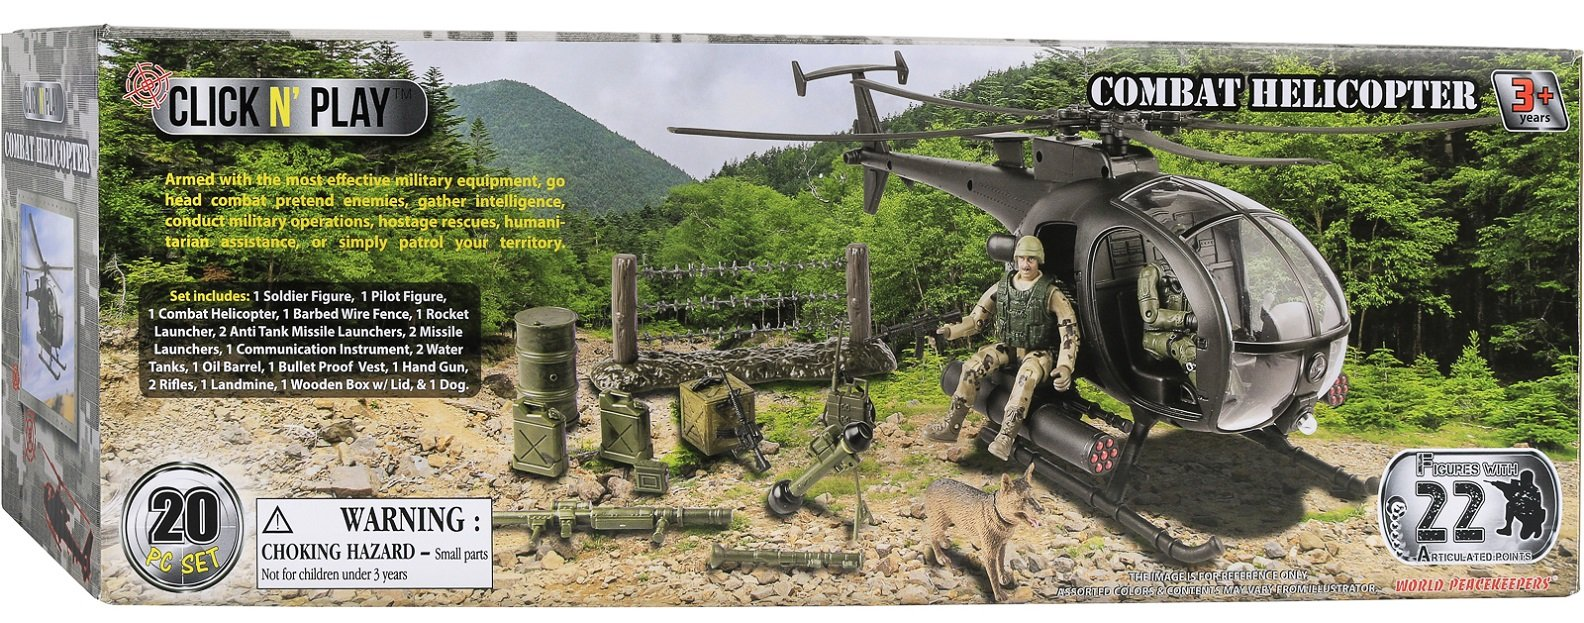 Click N' Play Military Attack Combat Helicopter 20 Piece Play Set With Accessories. by Click N'' Play (Image #5)